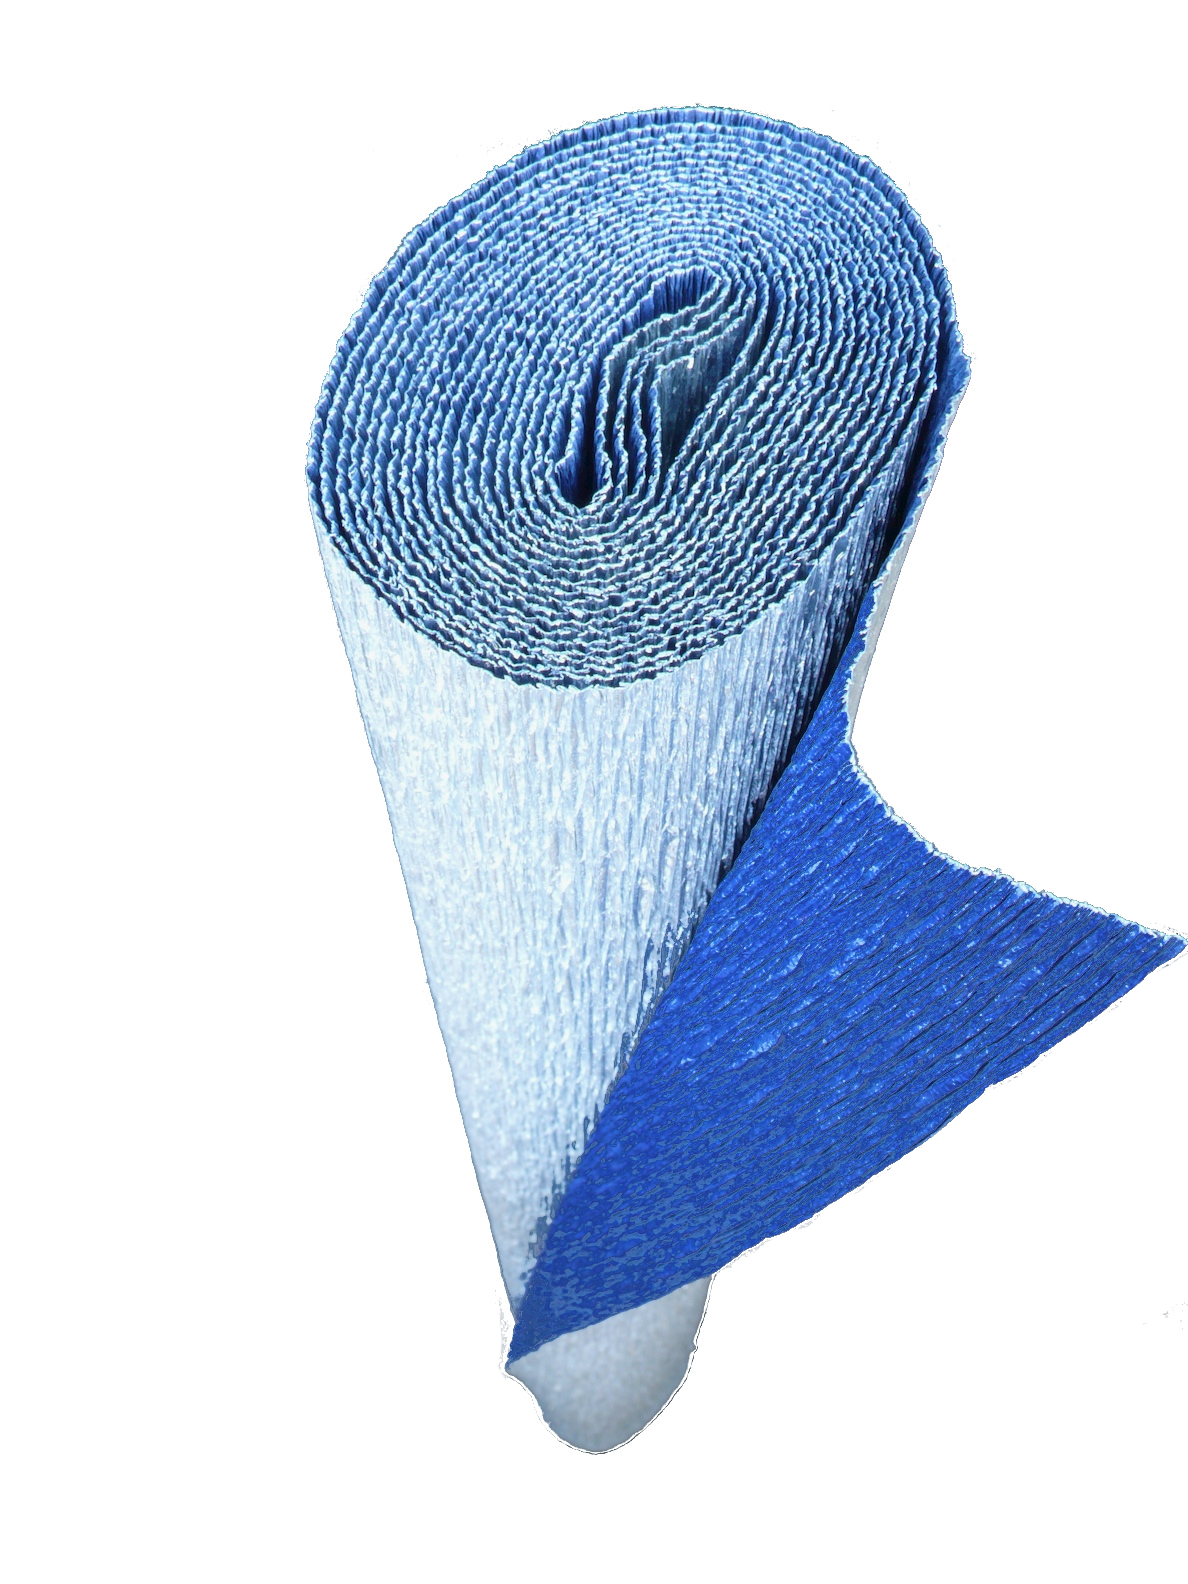 Italian Crepe Paper roll 180 gram - 802/7 Bi-Color METALLIC SILVER/NAVY BLUE